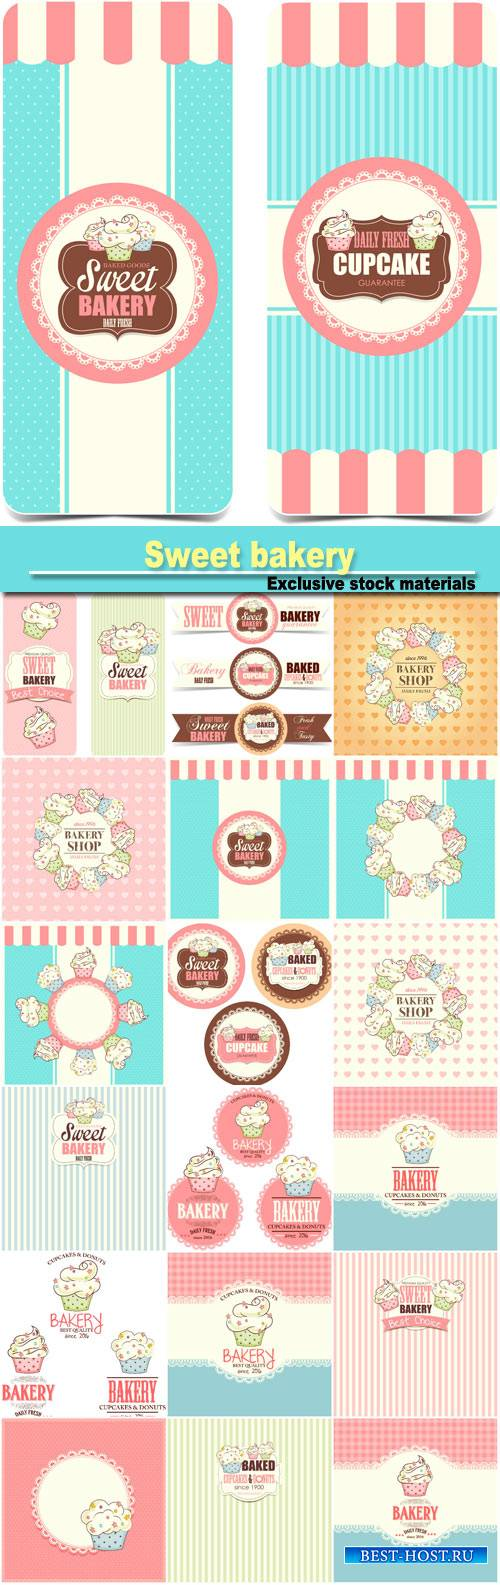 Sweet bakery, backgrounds and label